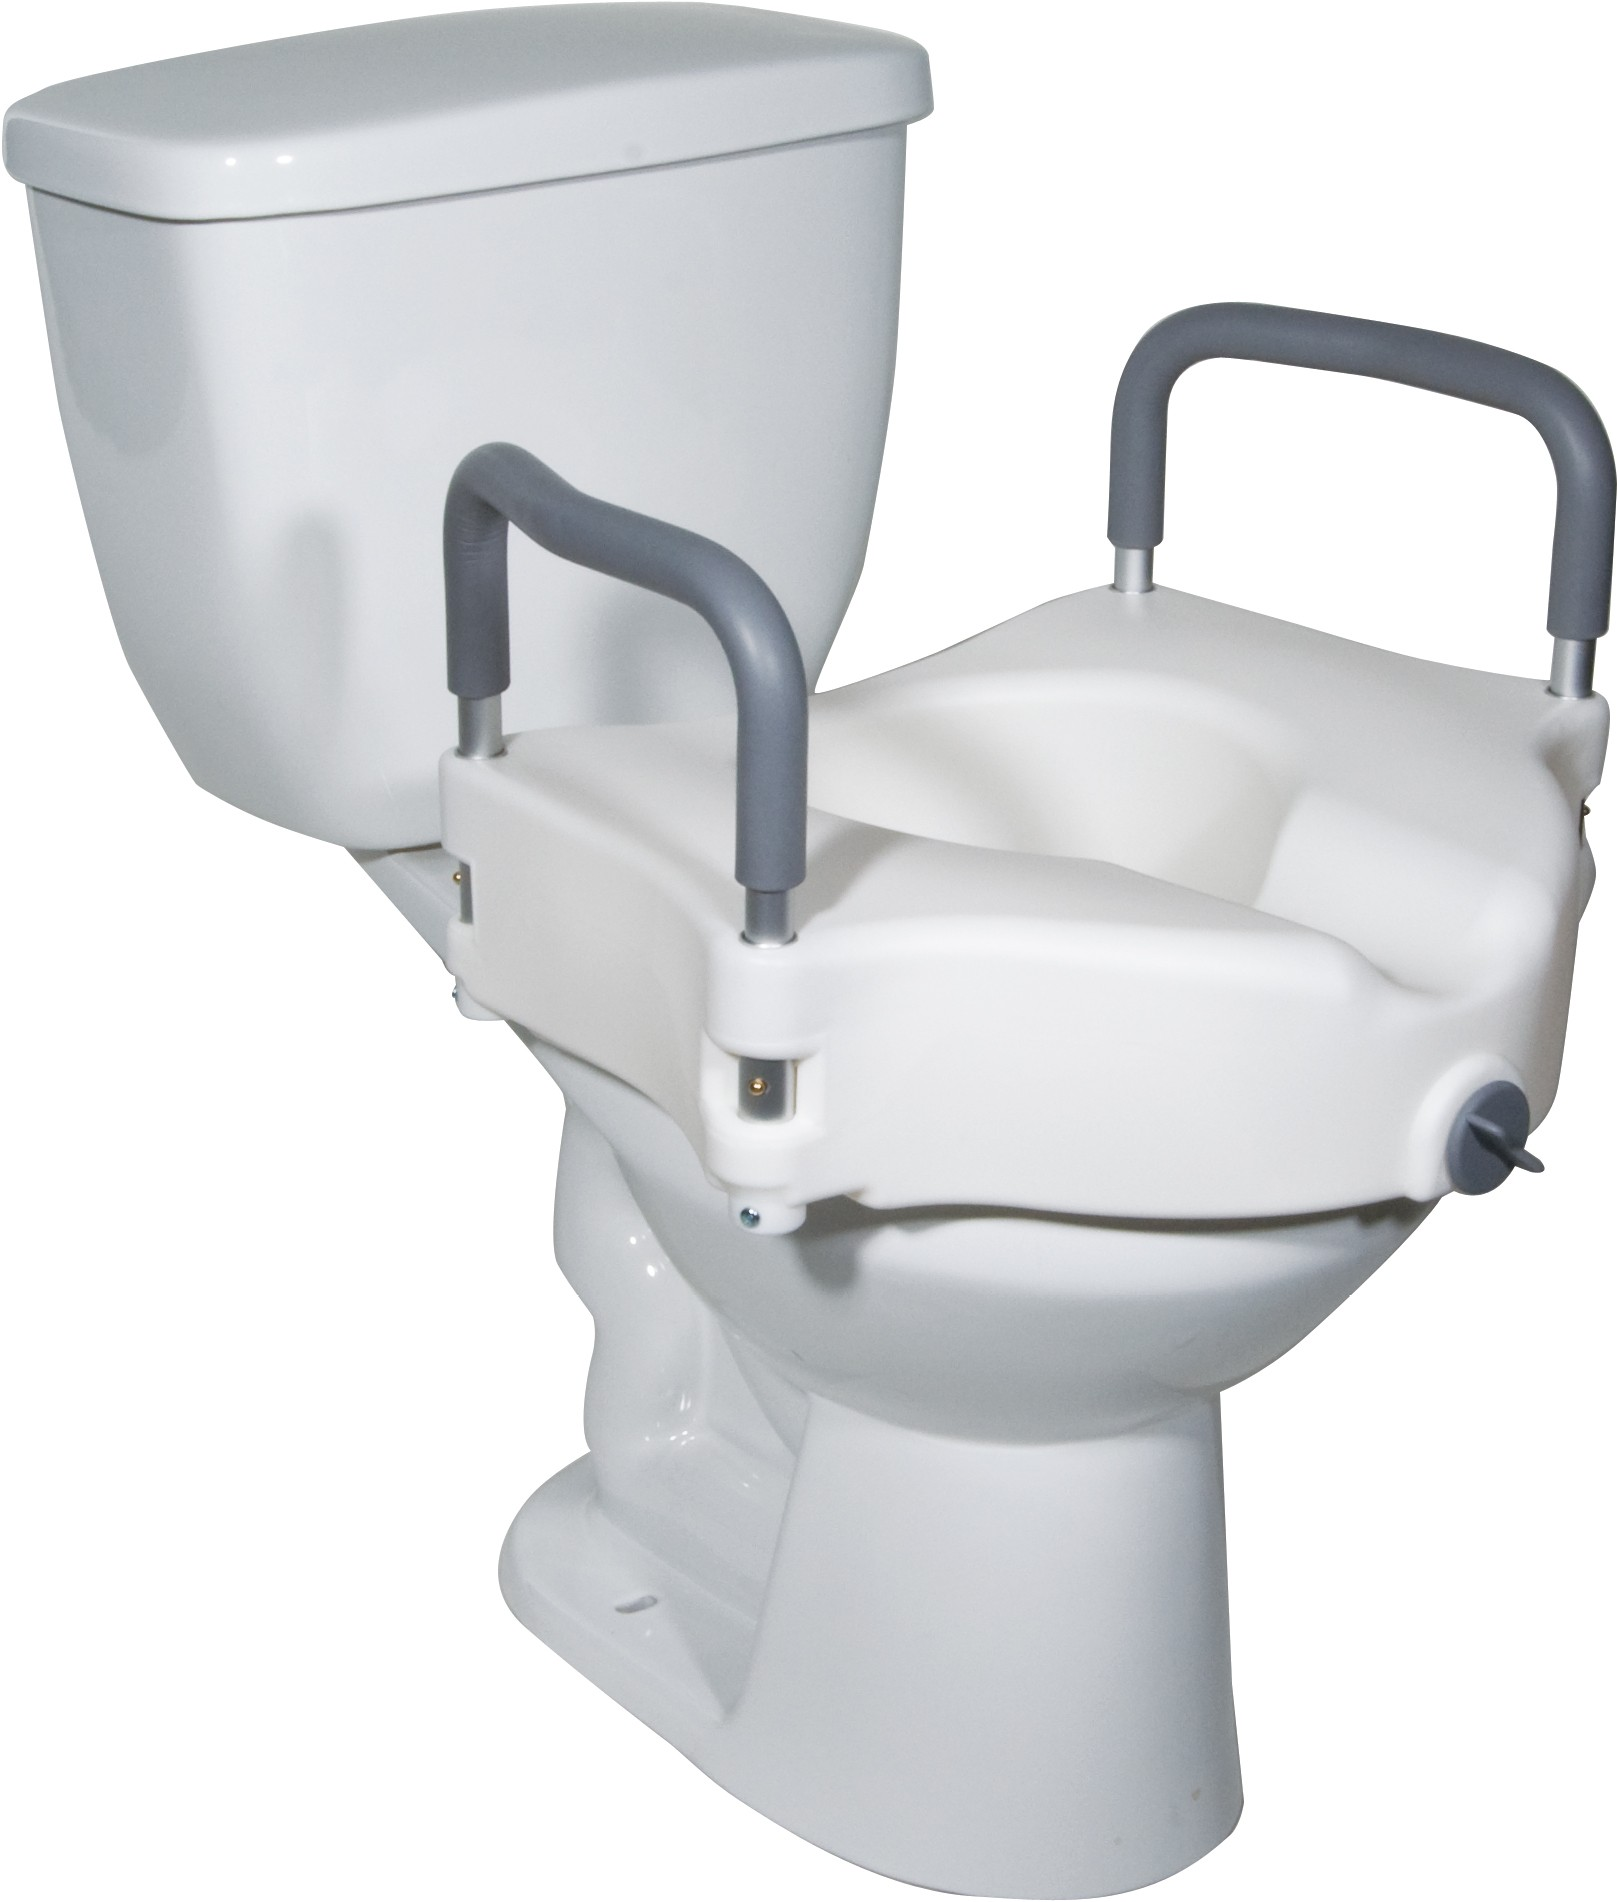 Toilet Seat Soft | Lowes Kohler Toilets | Cushioned Toilet Seats